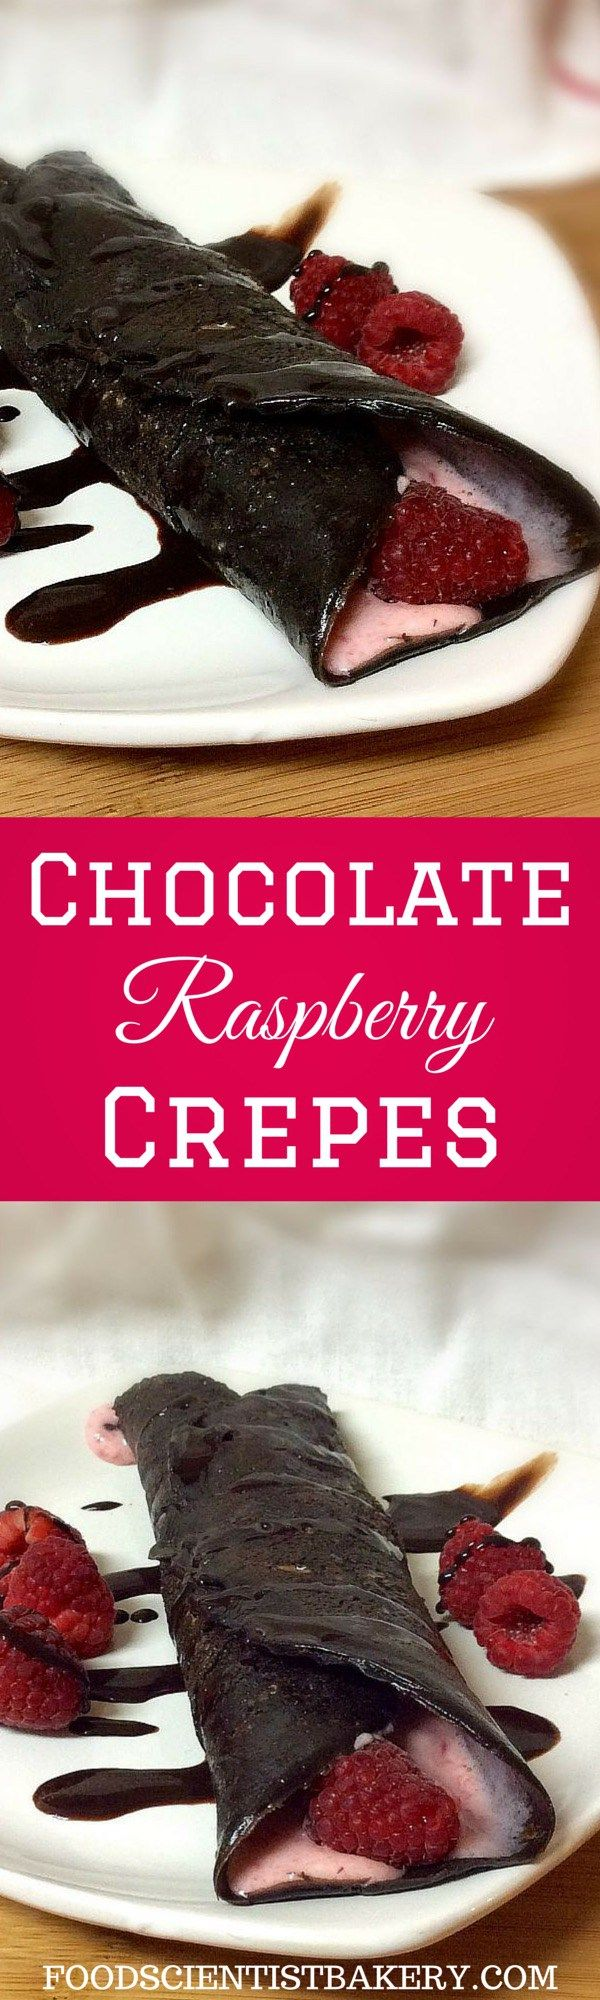 Chocolate Raspberry Crepes- thin chocolate crepes filled with fresh raspberry filling. An easy, filling brunch or dessert!